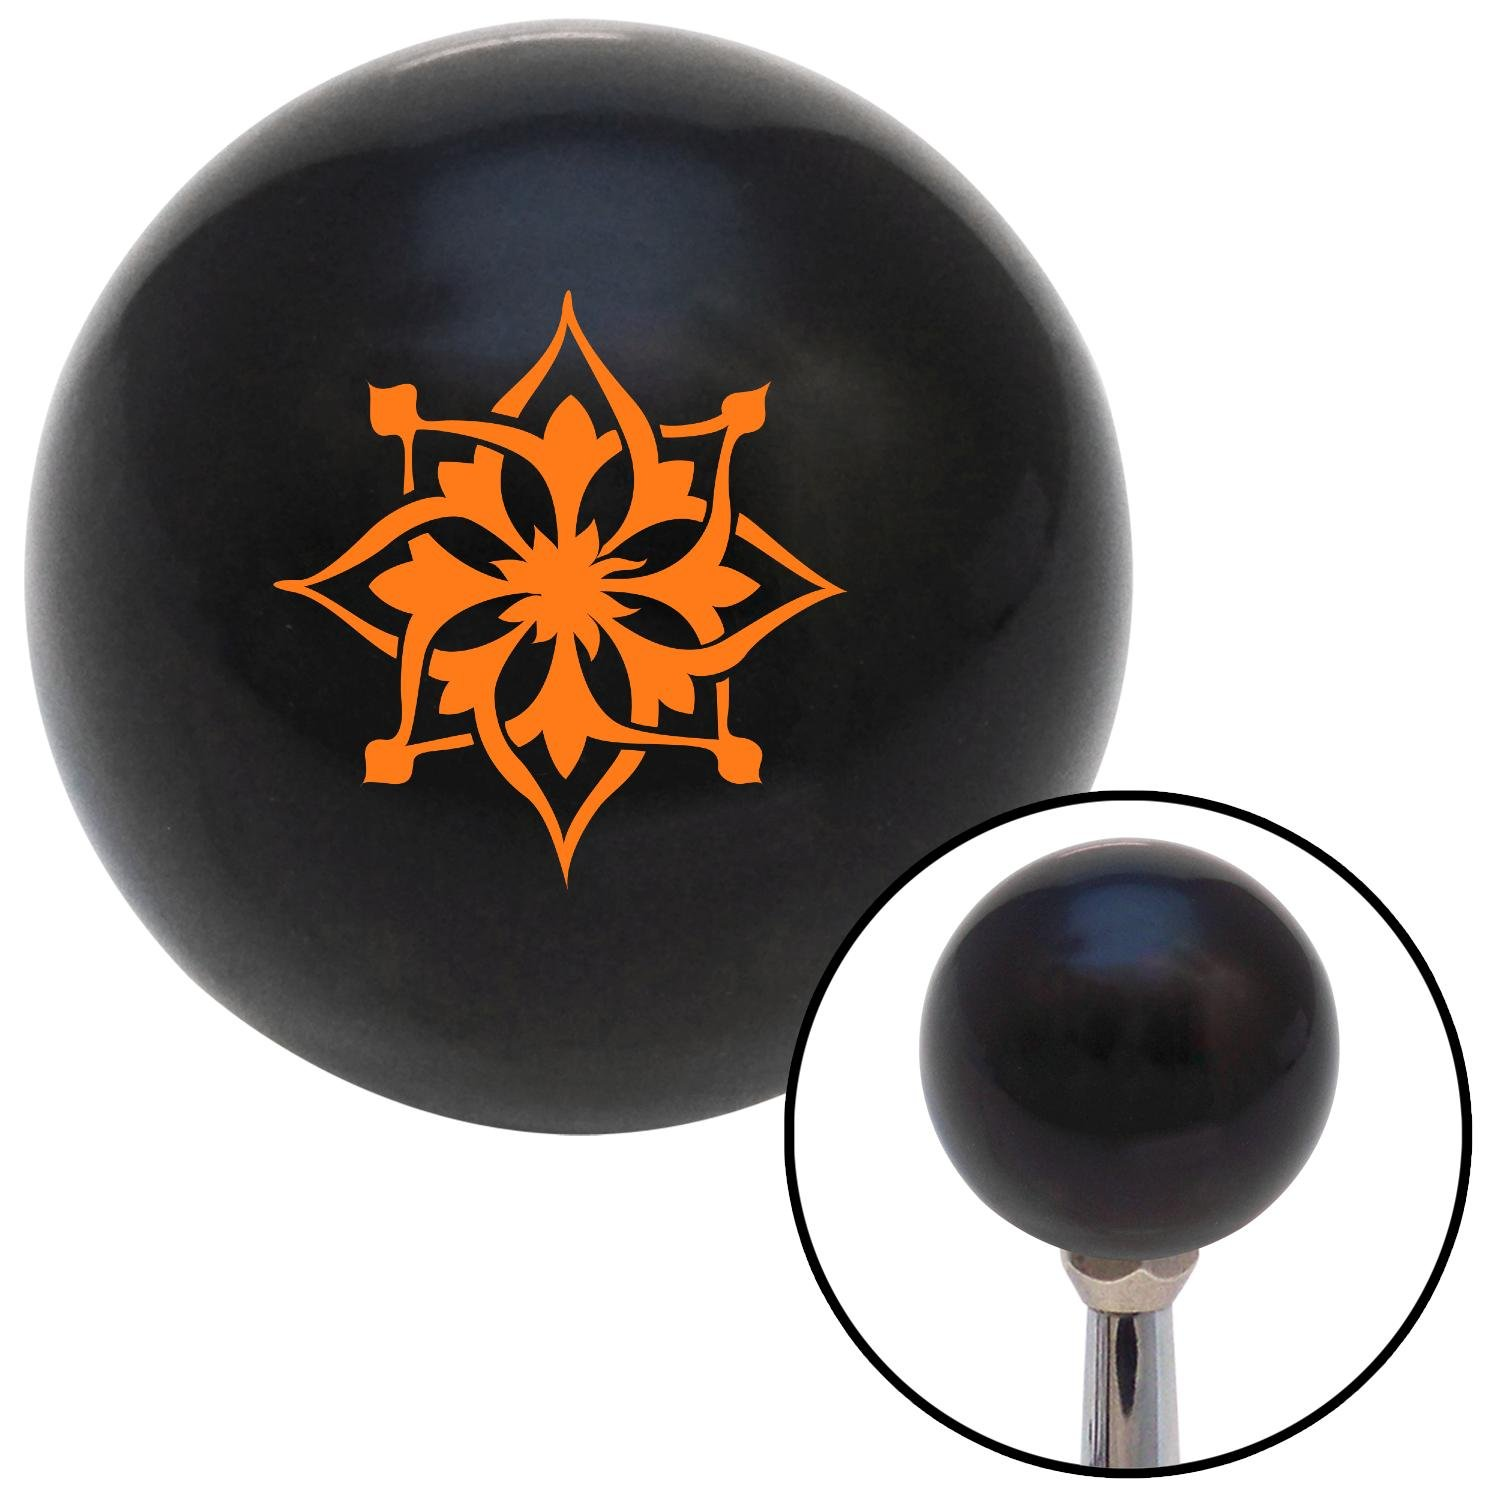 White Master Sergeant First Sergeant American Shifter 146360 Black Retro Shift Knob with M16 x 1.5 Insert